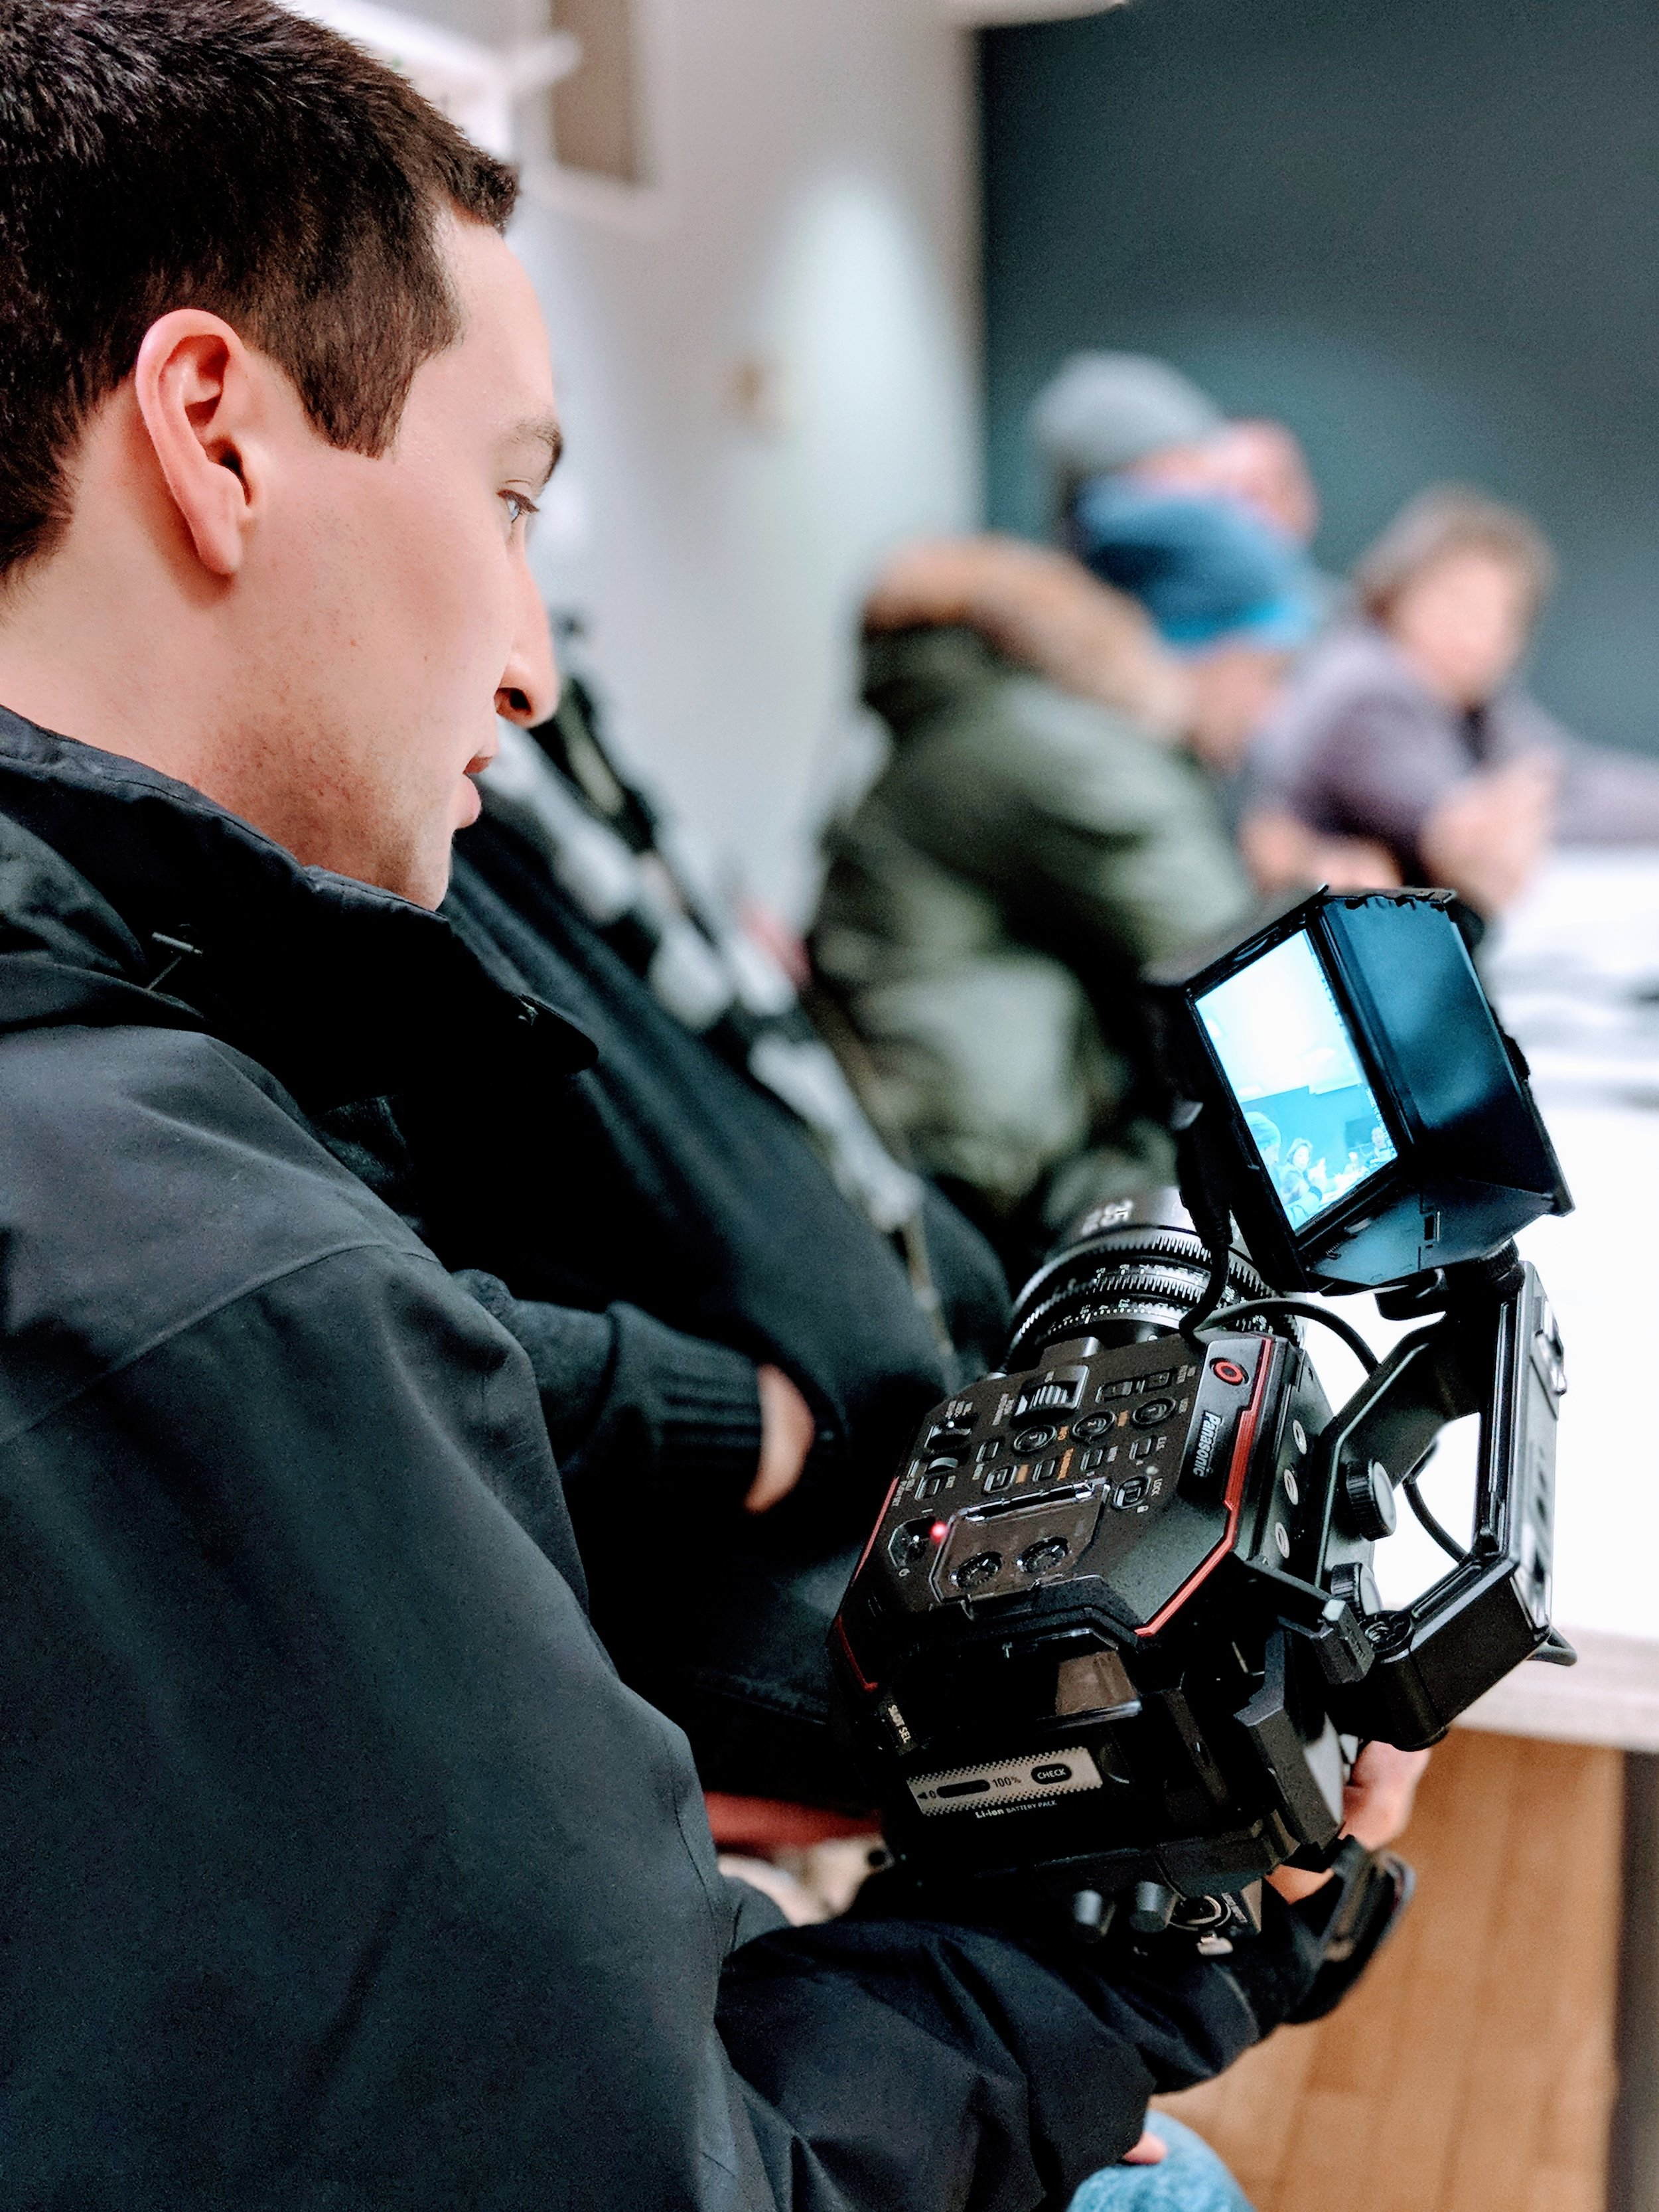 Find a Videographer - Our member's work spans a large range of industries. From corporate films, to weddings, aerials, weddings or even live streaming, you're sure to find the right fit for your next project.Certified Professional Videographer DirectoryAssociate & Student Member Directory